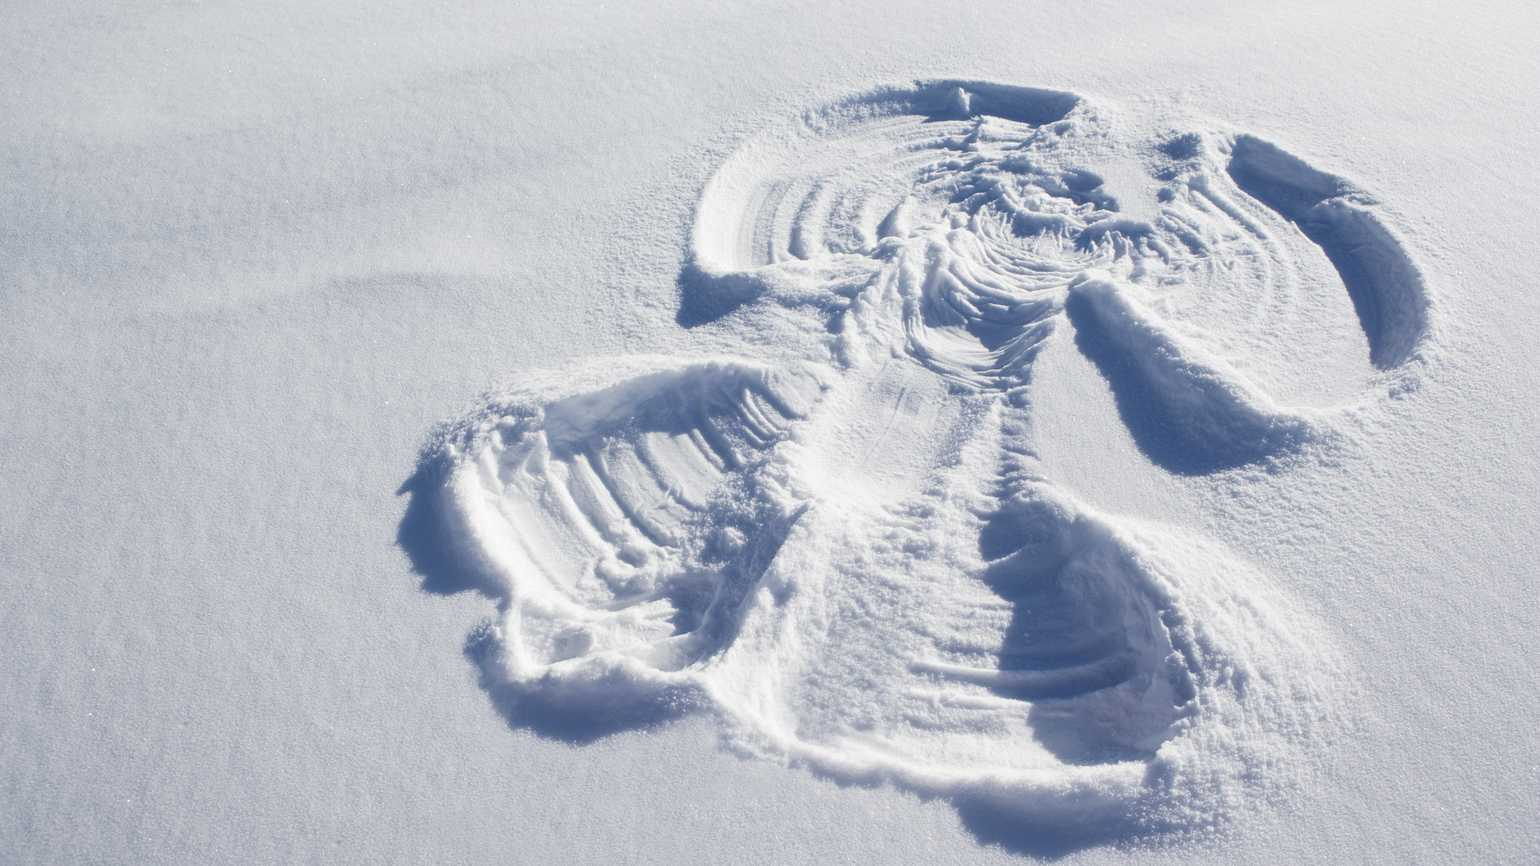 A large, majestic snow angel on a bed of untouched snow.